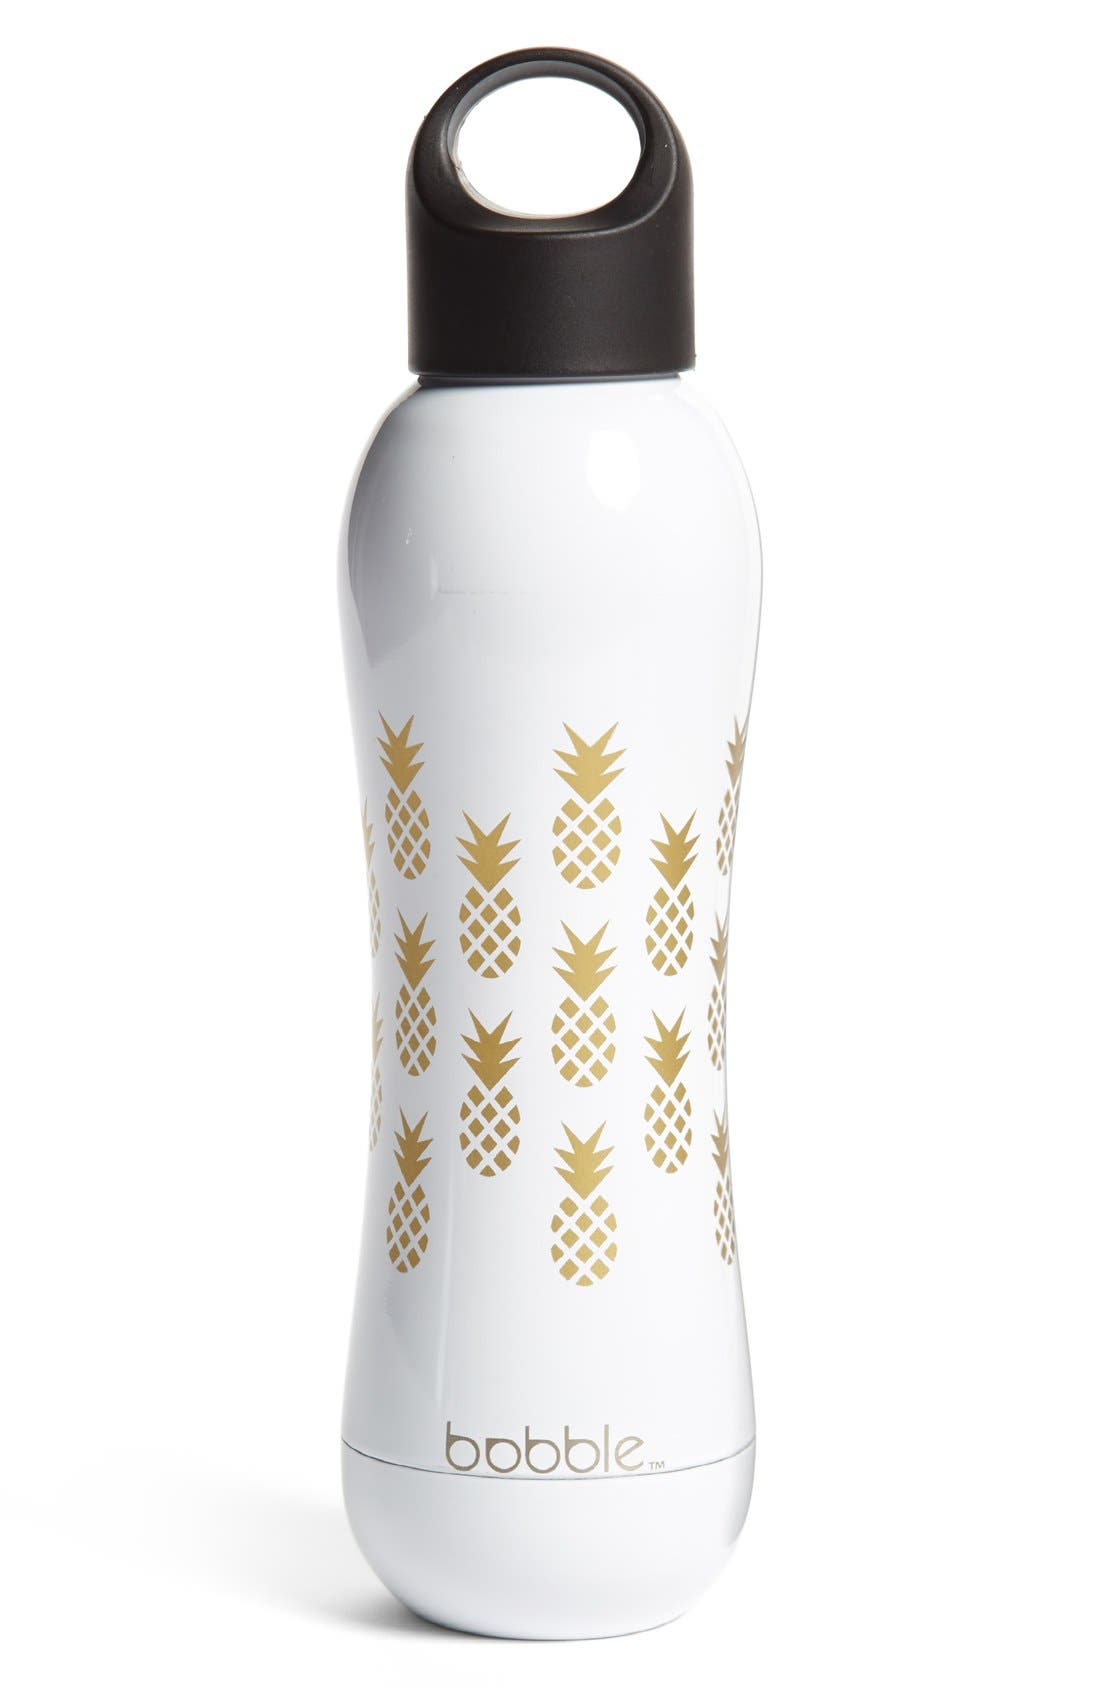 Alternate Image 1 Selected - bobble 'Pining for You' Stainless Steel Water Bottle